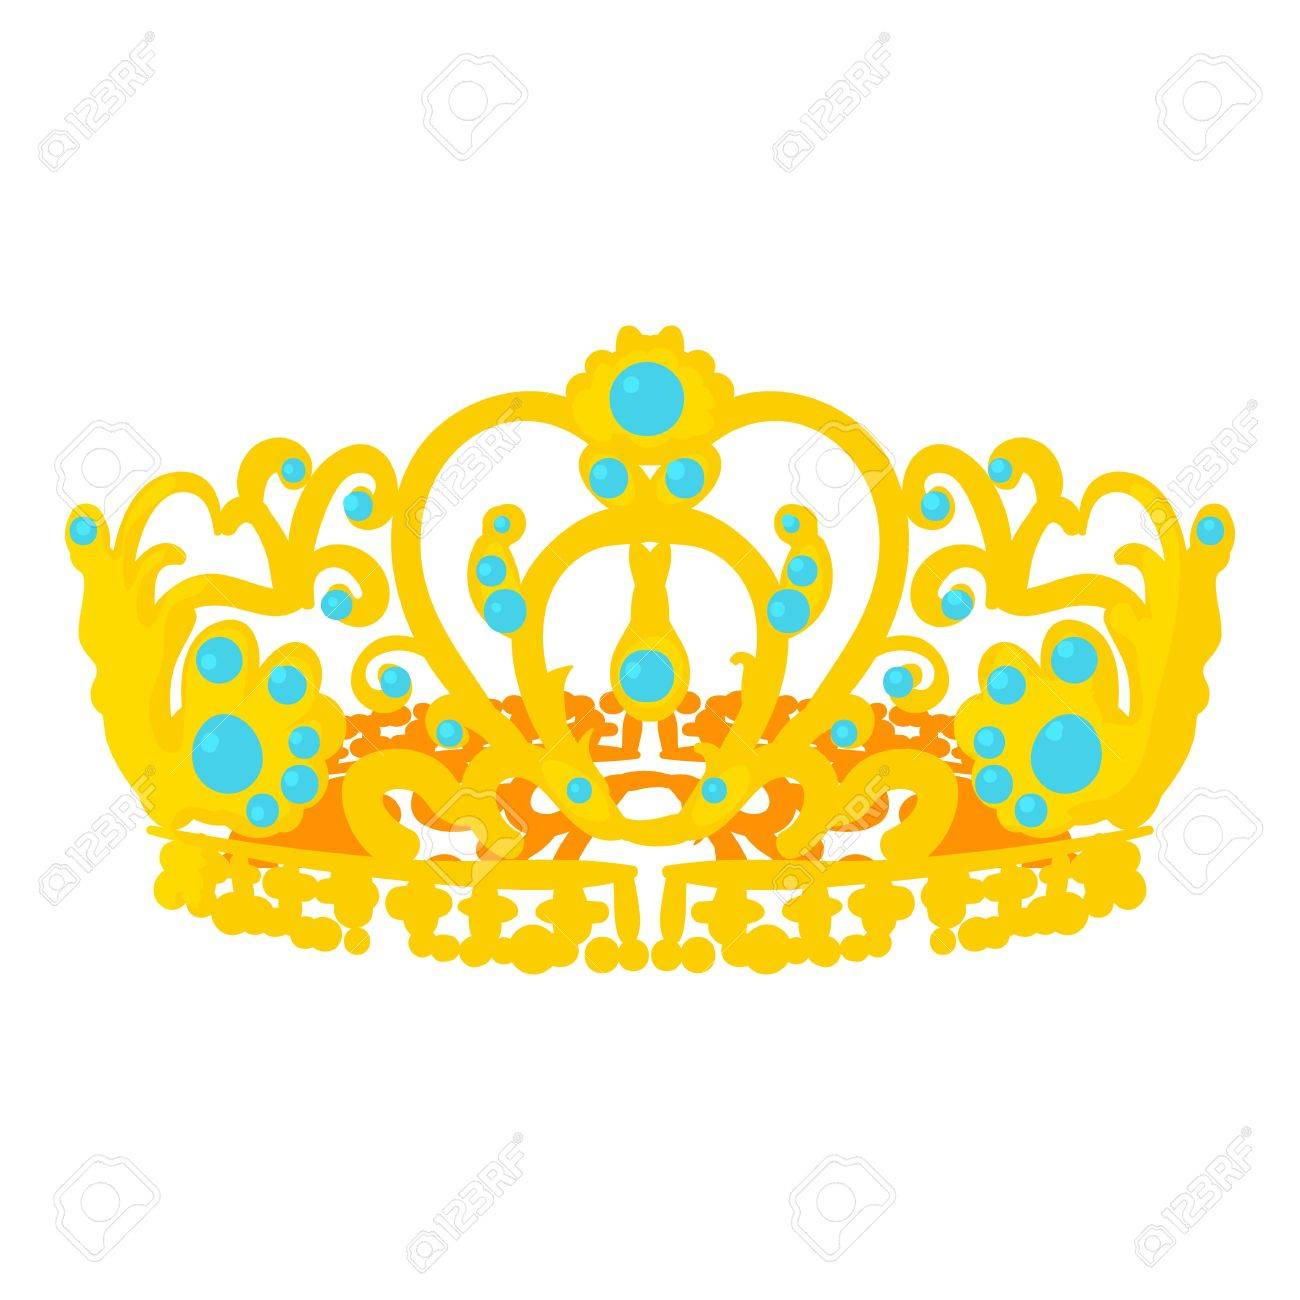 Crown Of The Queen Icon Cartoon Style Royalty Free Cliparts Vectors And Stock Illustration Image 82255062 Crown euclidean computer file, cartoon crown, three crowns illustration png clipart. crown of the queen icon cartoon style